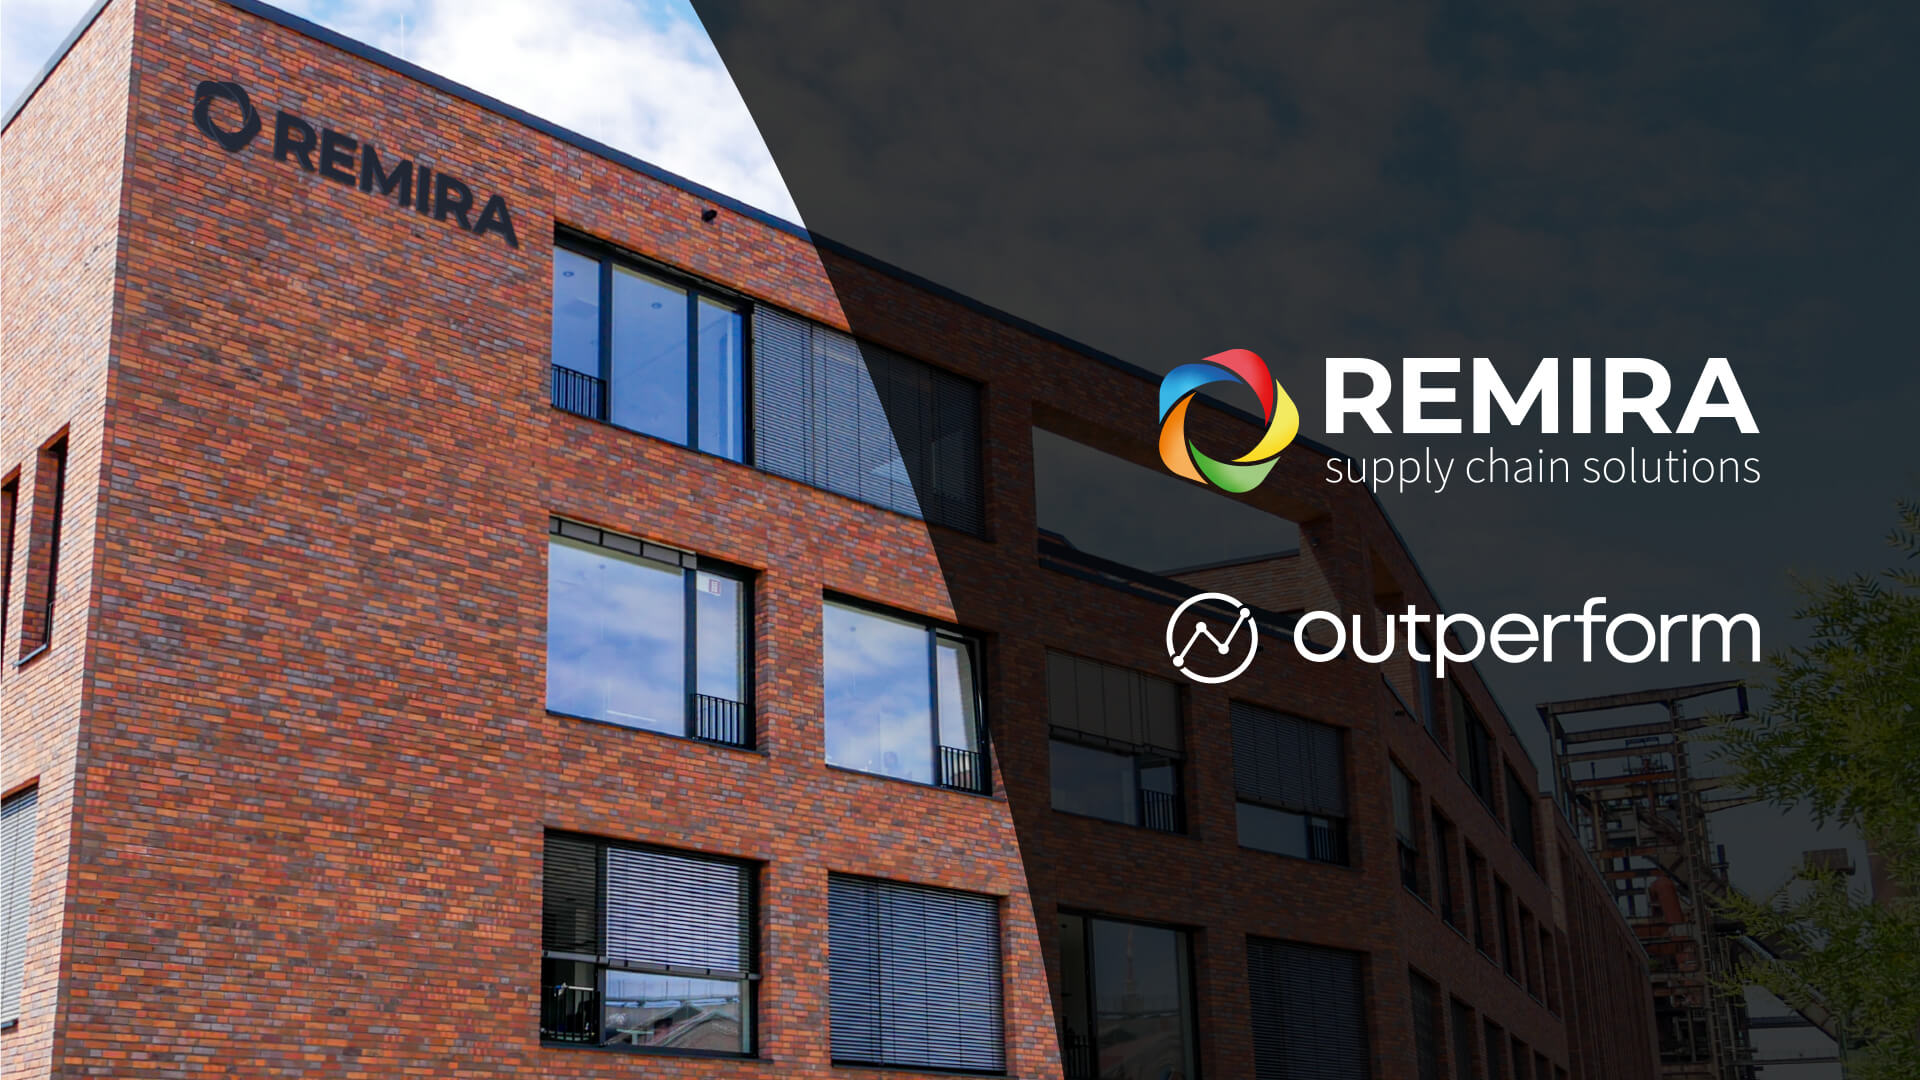 REMIRA building with mock up of REMIRA and outperform logo